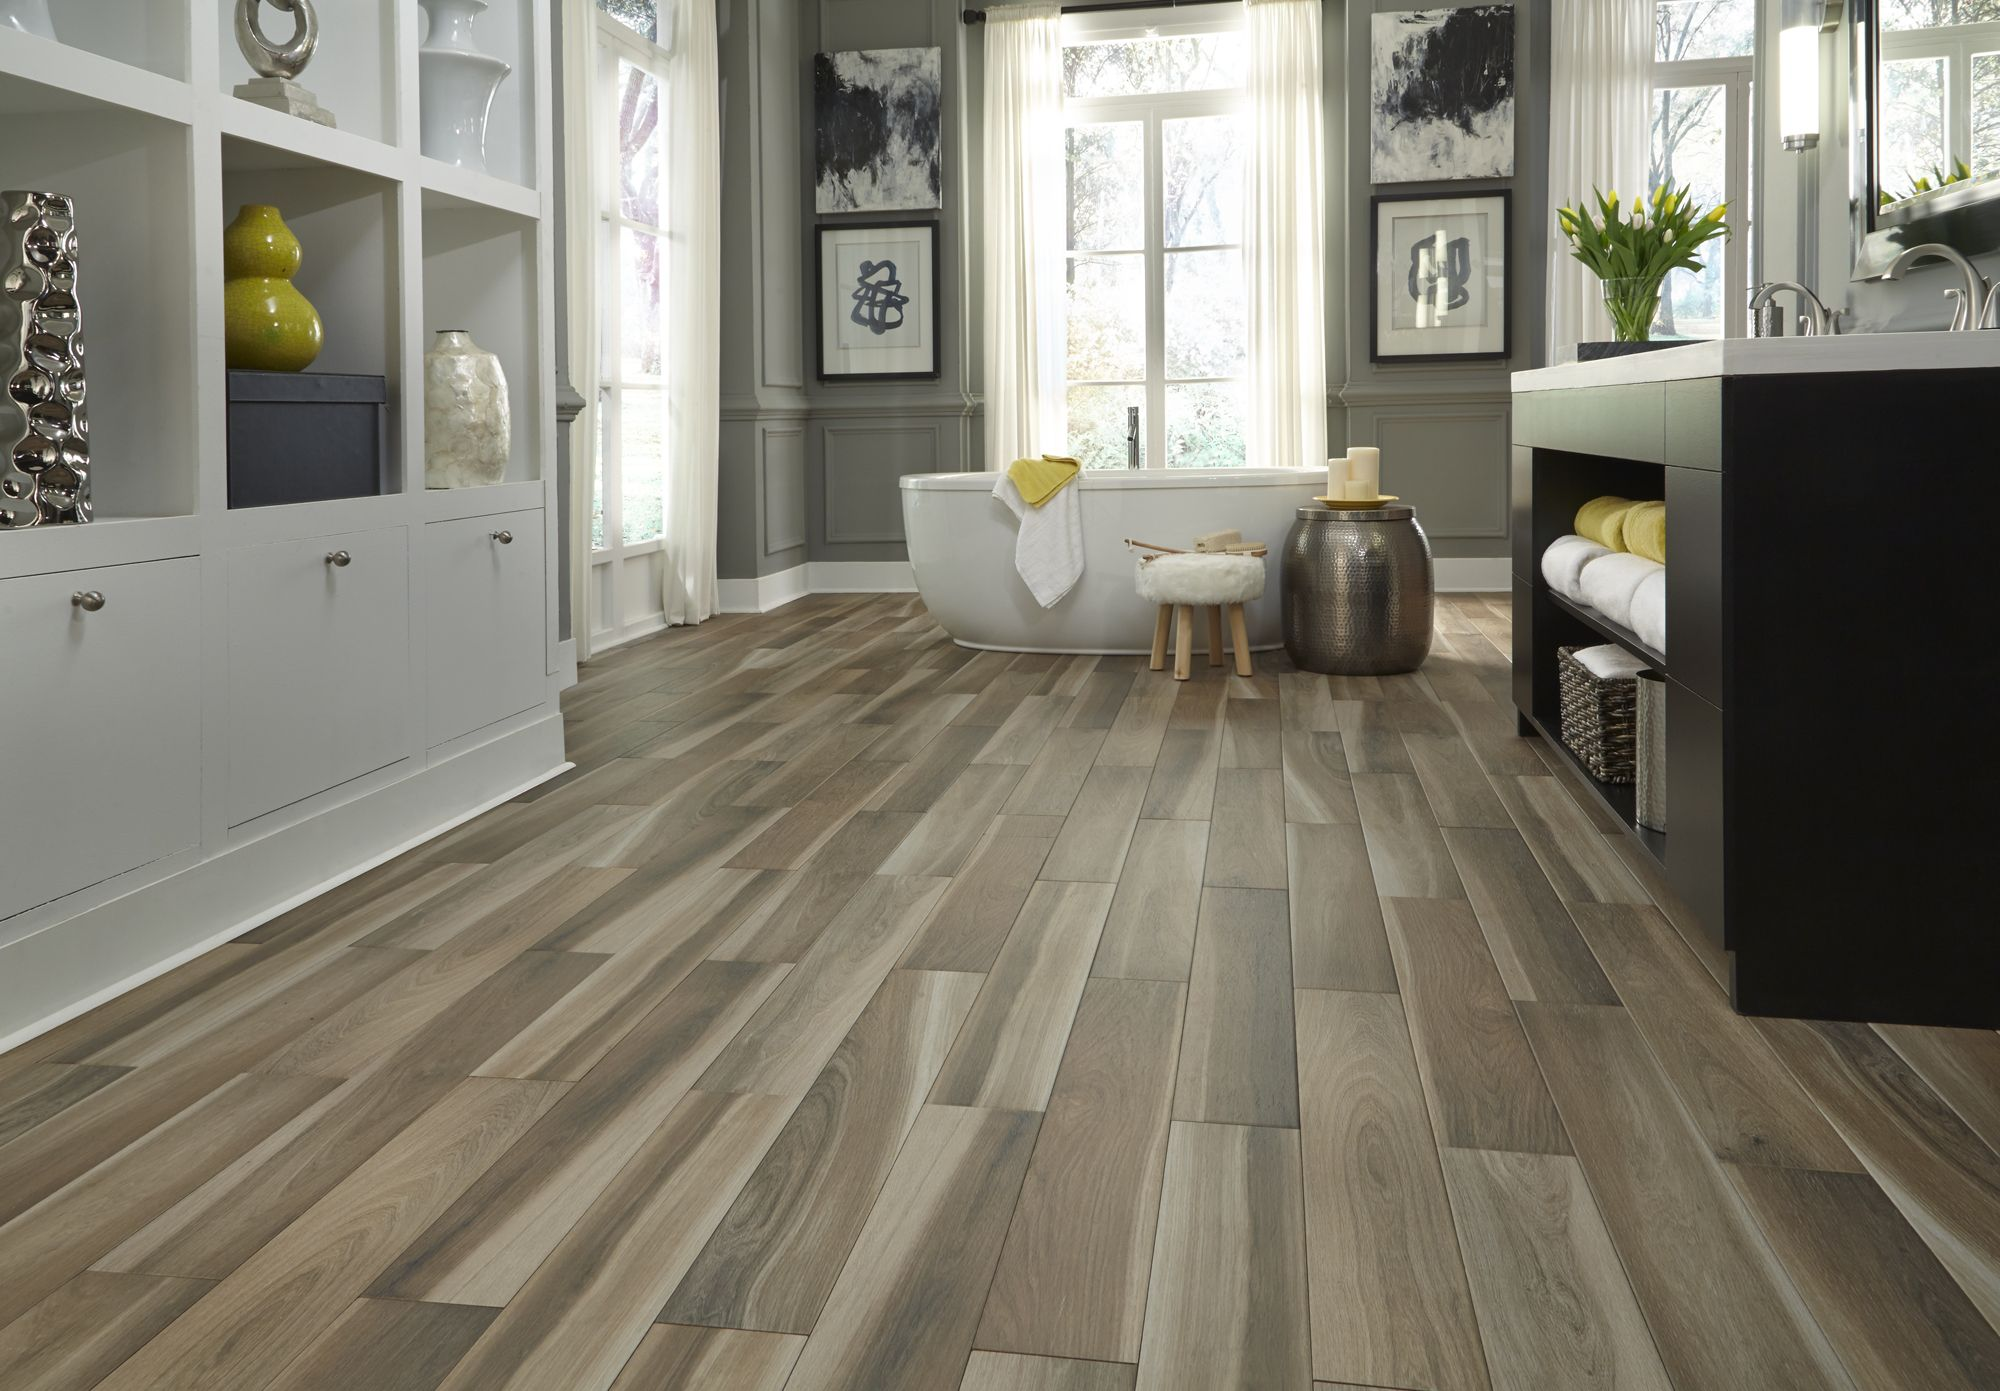 Brindle Wood Natural Porcelain WoodLook Tile Floors